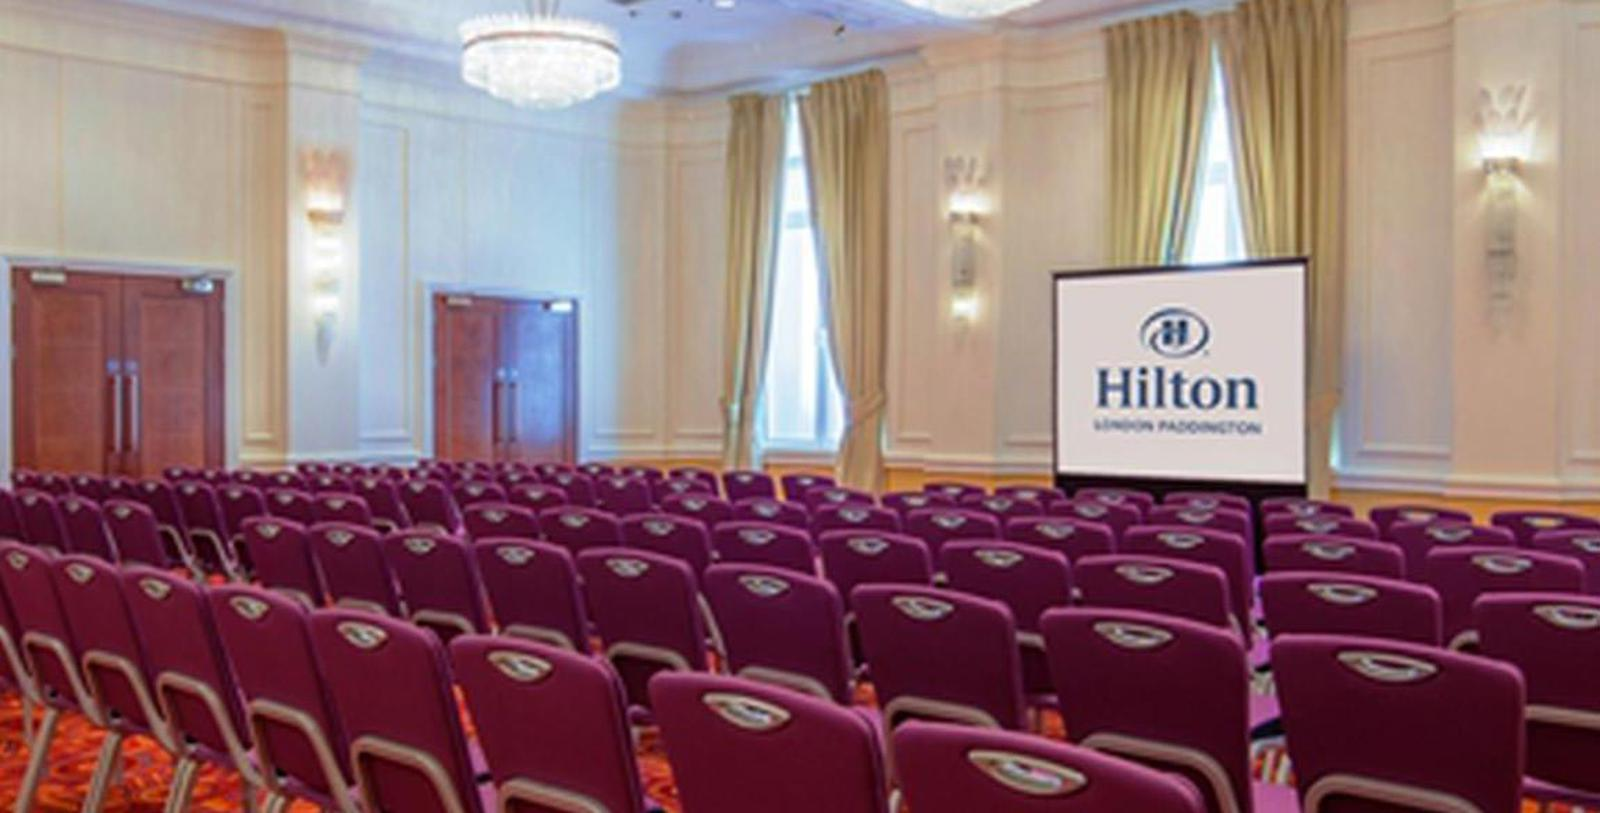 Image of Ballroom Theatre, Hilton London Paddington, United Kingdom, 1854, Member of Historic Hotels Worldwide, Experience